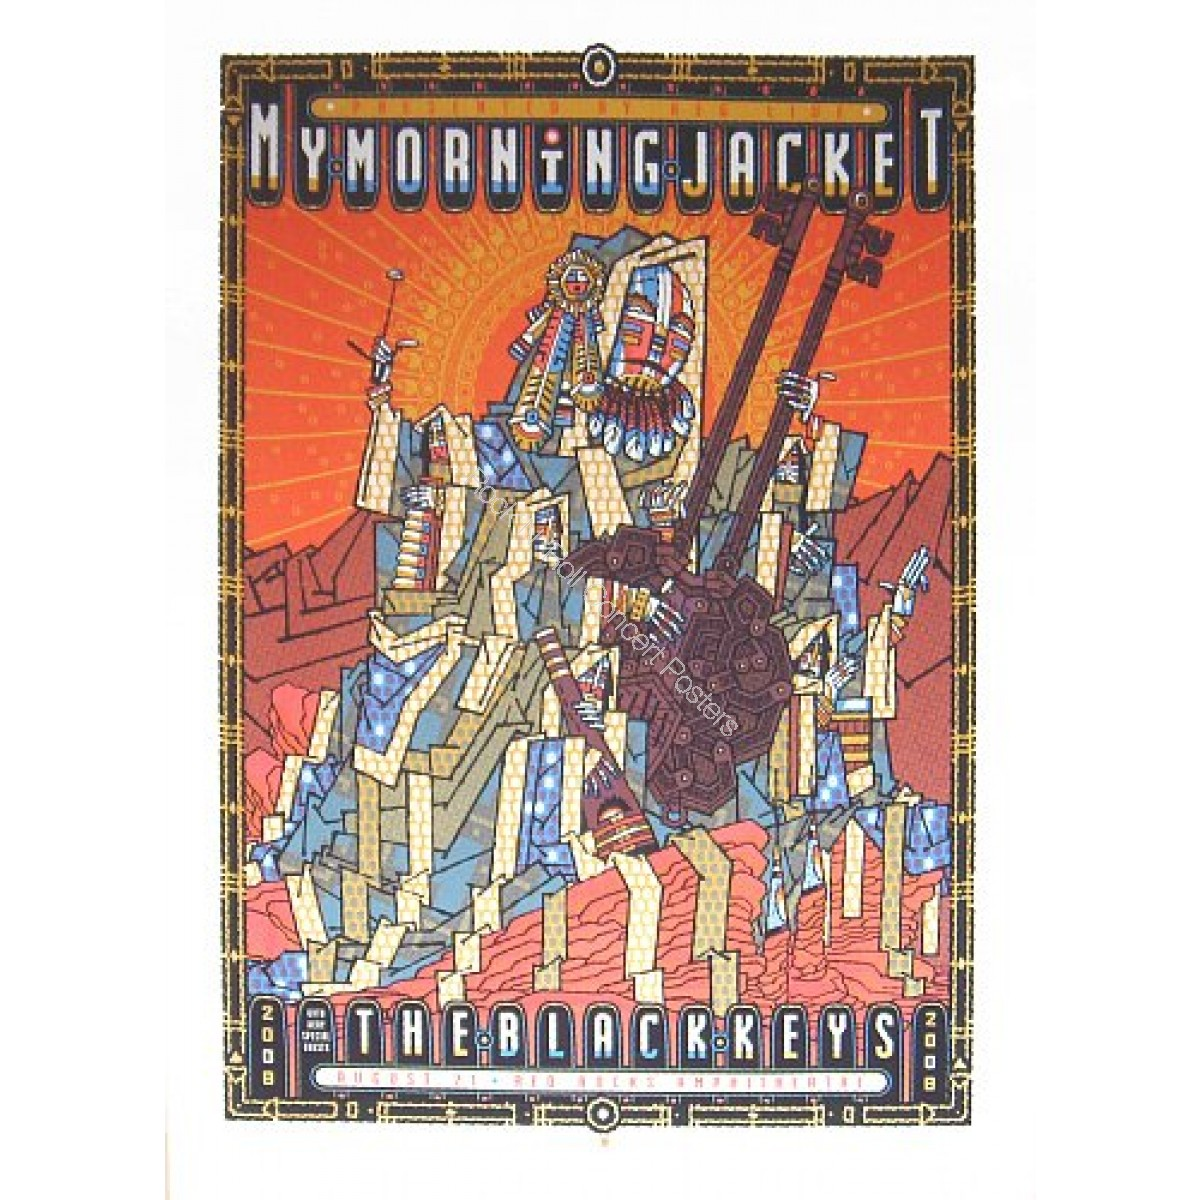 My Morning Jacket & The Black Keys  @ Red Rocks 2008 LE Print of 370 By Guy Burwell